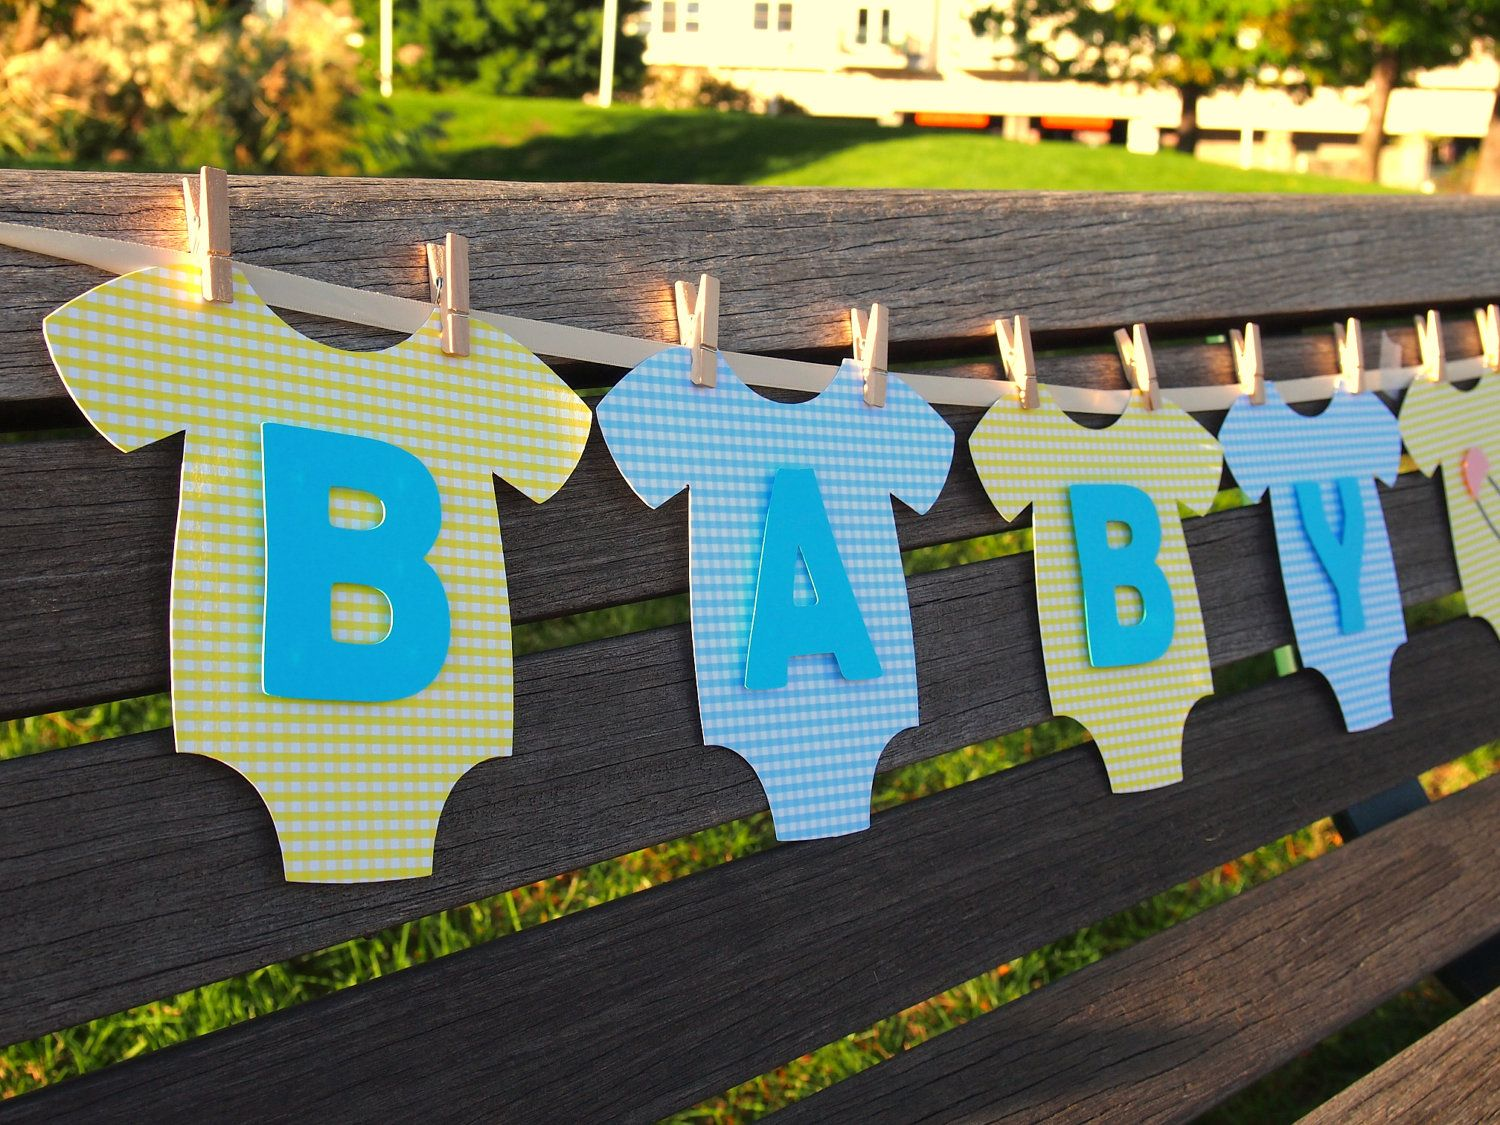 Onesie  BABY BOY  Baby Shower Banner  Yellow and Blue Baby Shower Decoration. Onesie  BABY BOY  Baby Shower Banner  Yellow and Blue Baby Shower